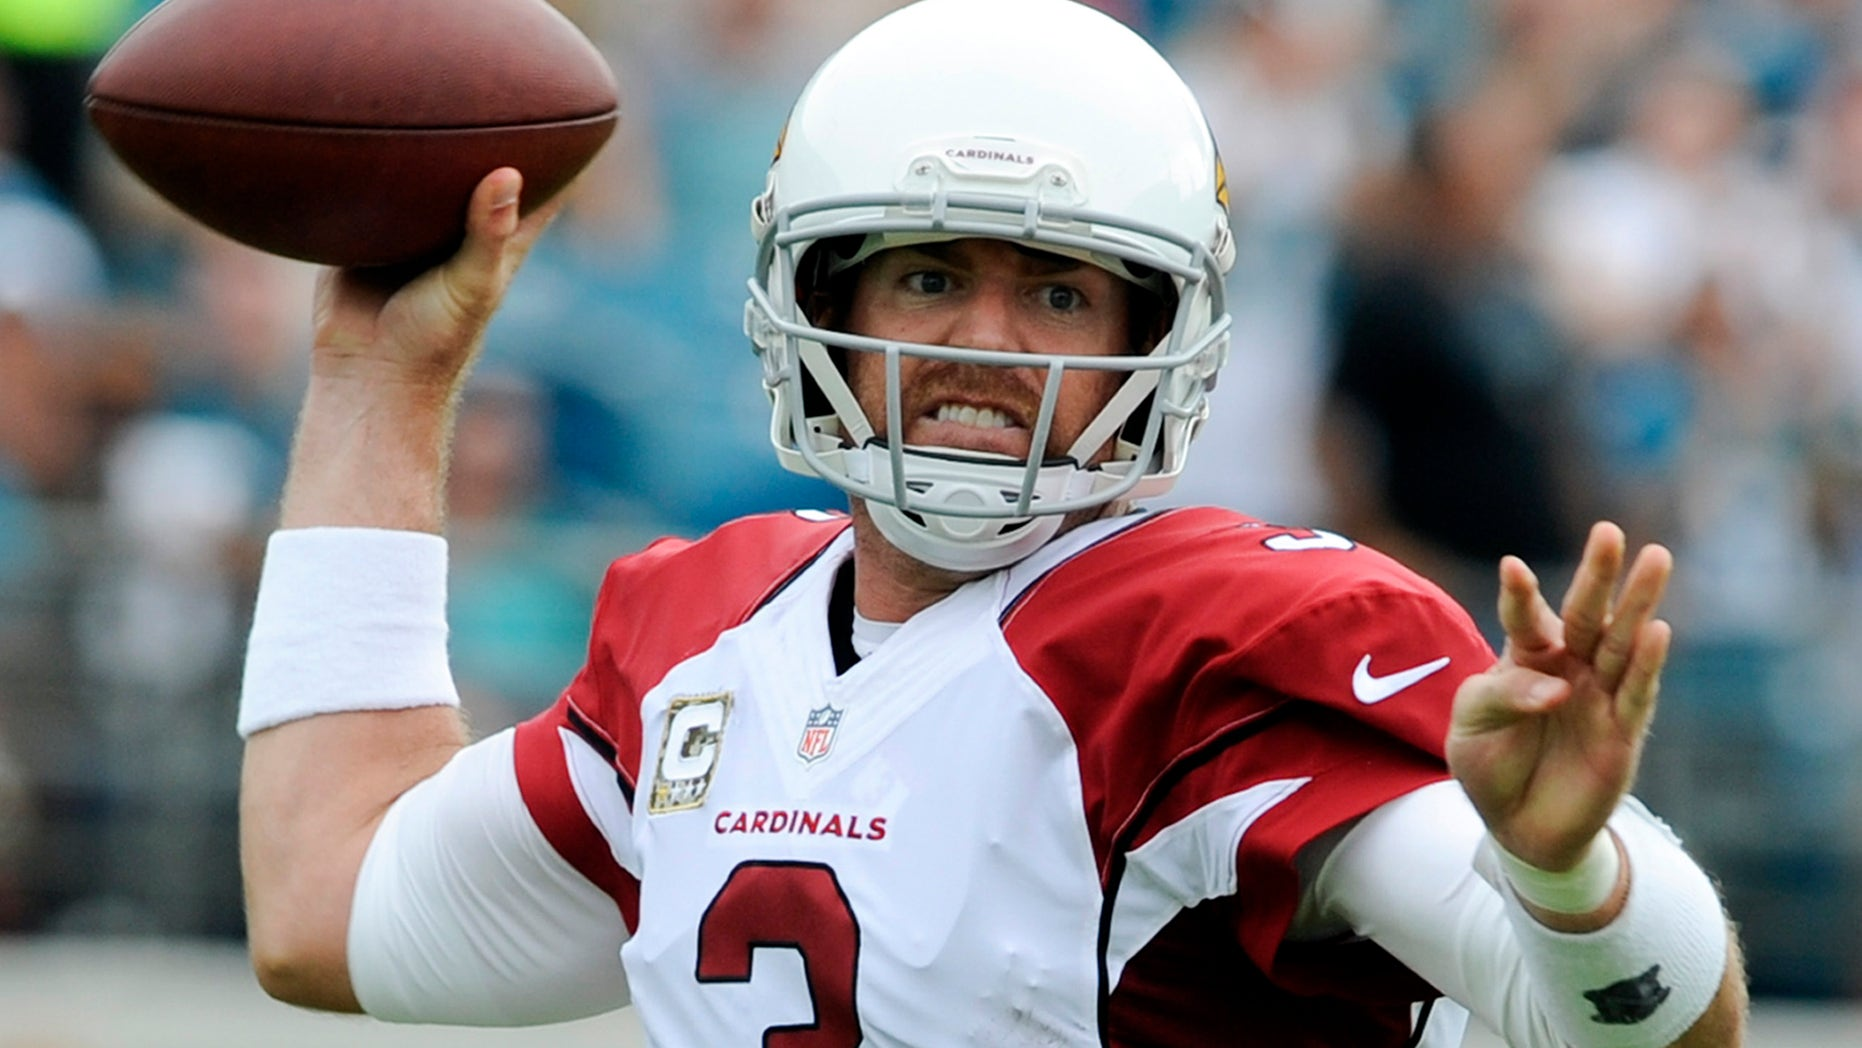 Arizona Cardinals quarterback Carson Palmer (3) throws a pass as he is pressured by the Jacksonville Jaguars defense during the first half of an NFL football game in Jacksonville, Fla., Sunday, Nov. 17, 2013. (AP Photo/Stephen Morton)